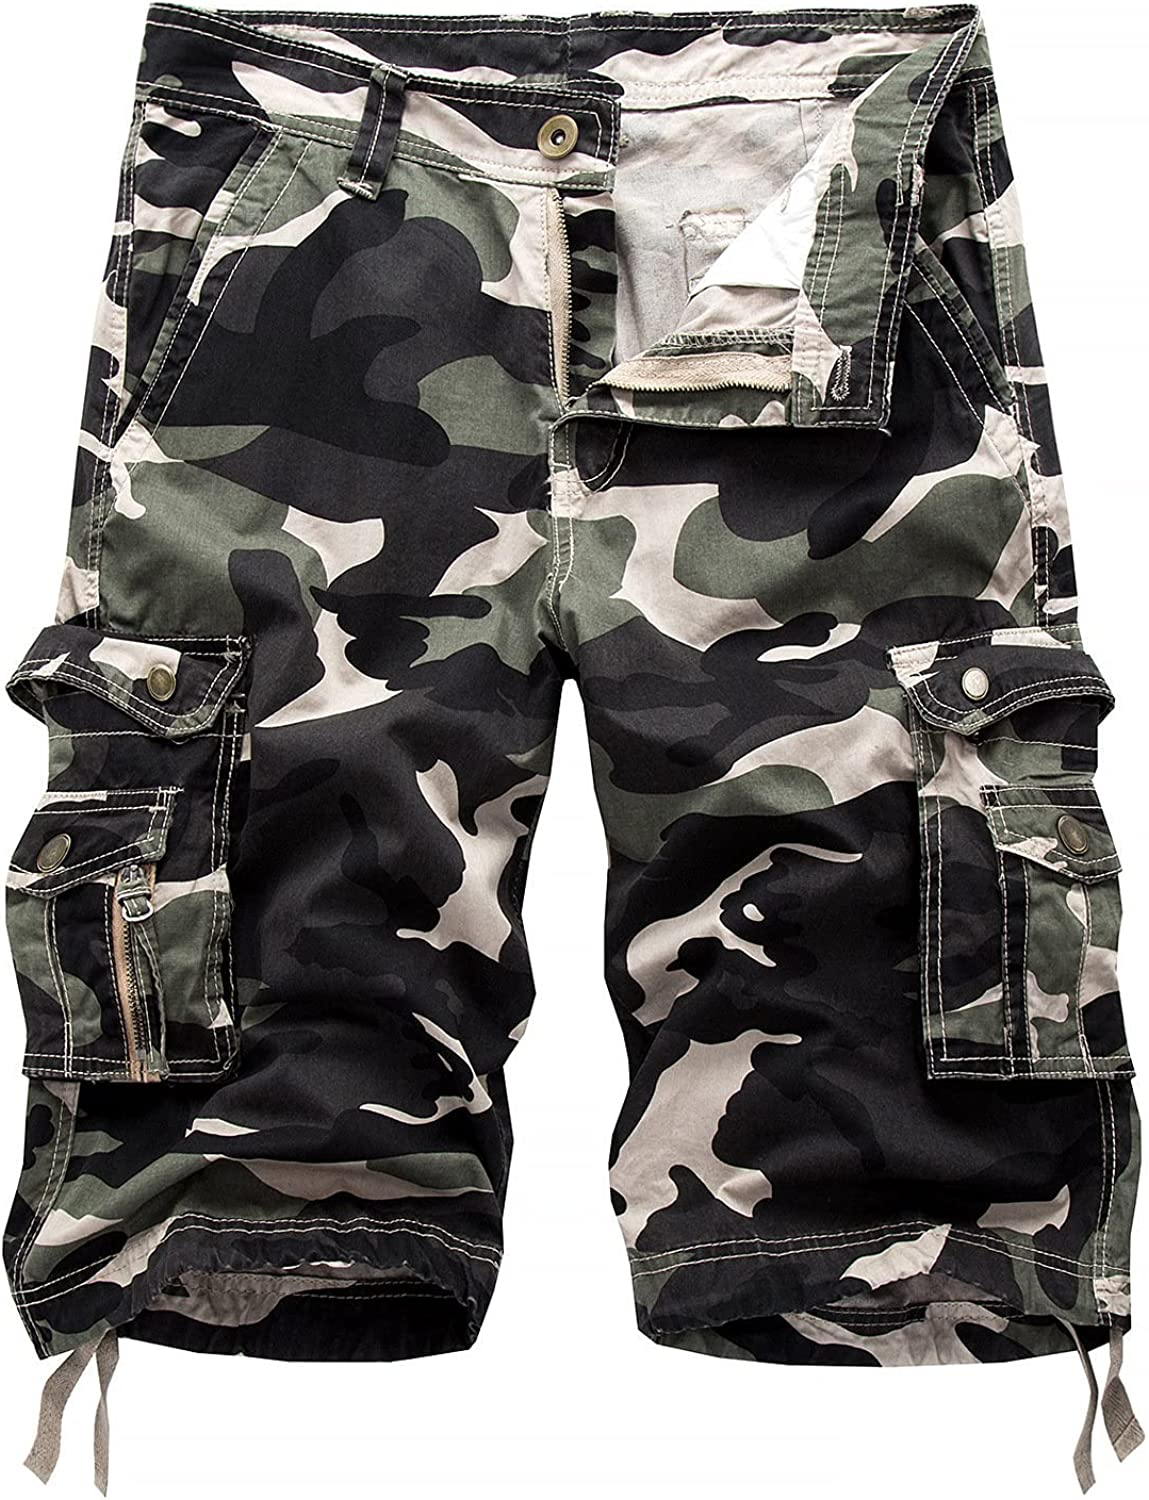 Mens Camo Multi Shorts Relaxed Cargo Pockets Work Short-pant Outdoor Casual Slim Fit Cotton Camouflage Short